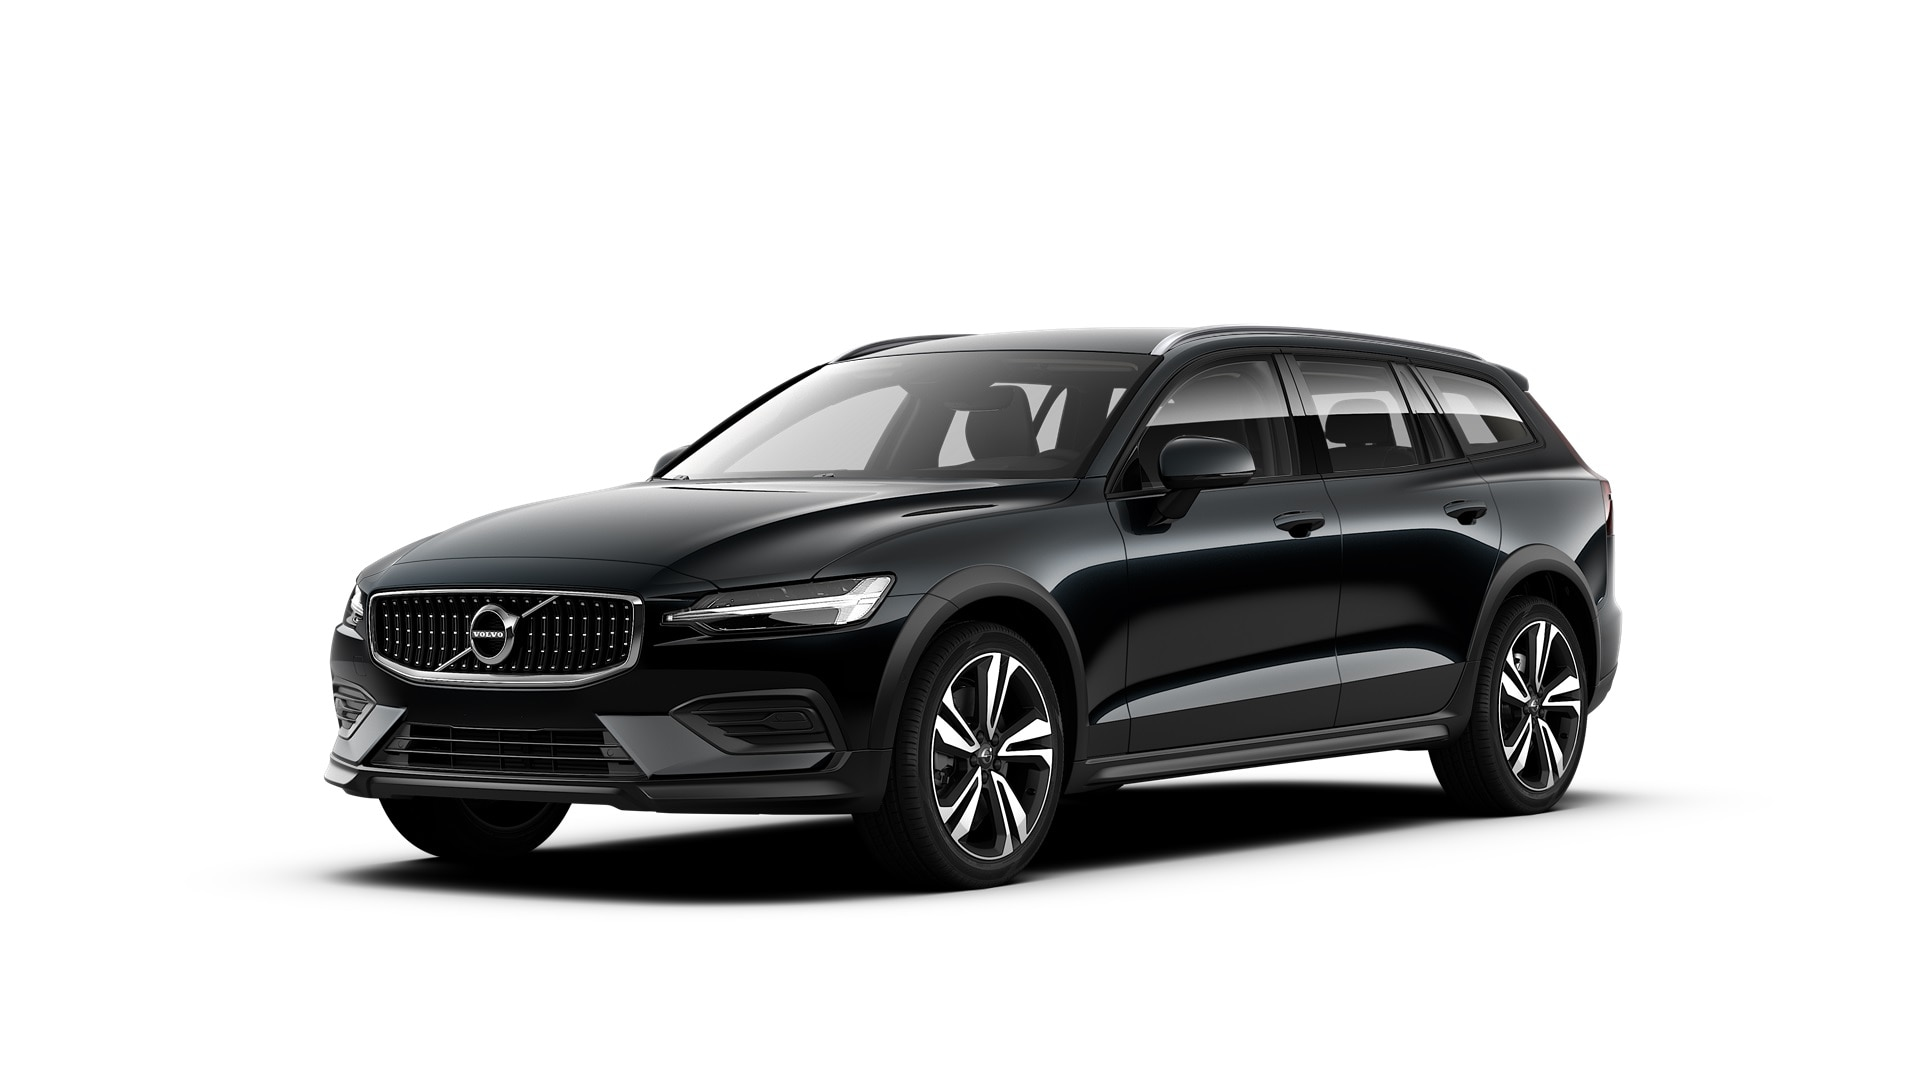 v60 cross country 2021 | volvo-support